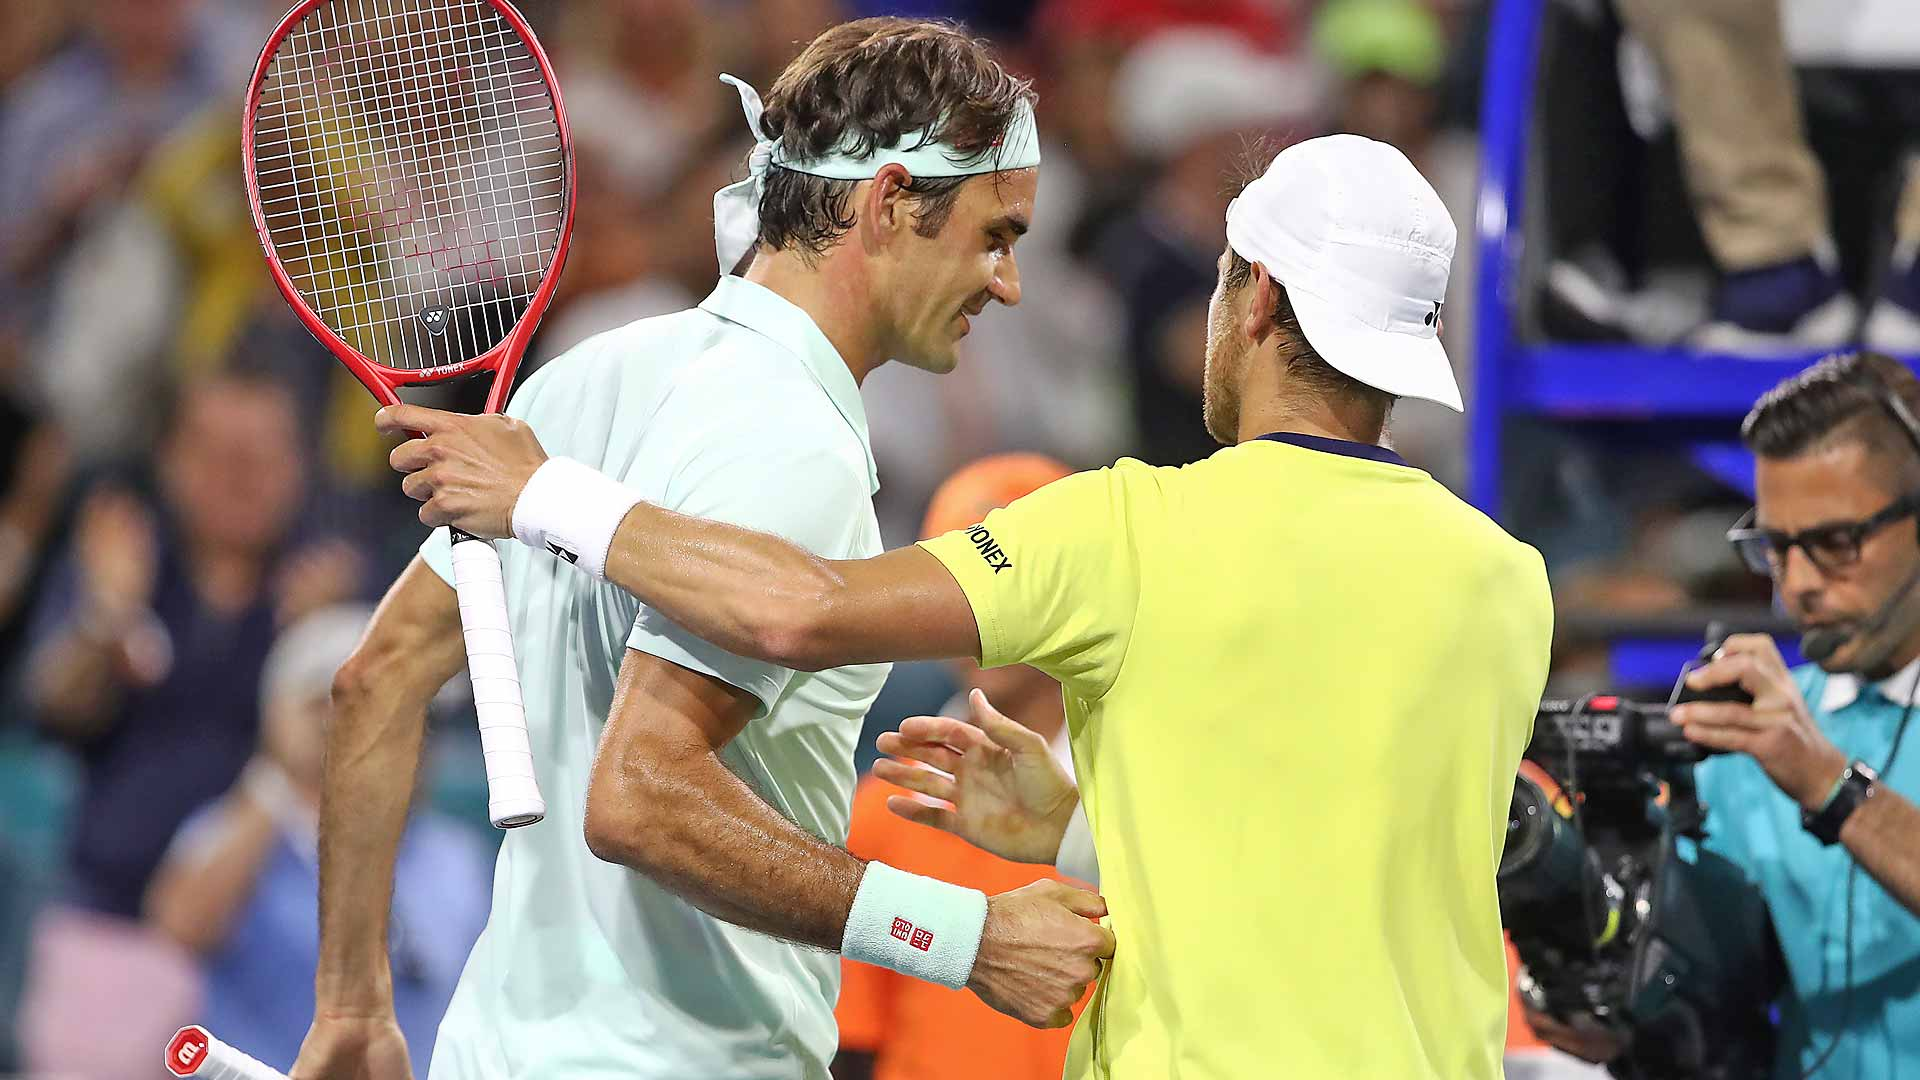 Roger Federer shakes hands with Radu Albot after their match in Miami